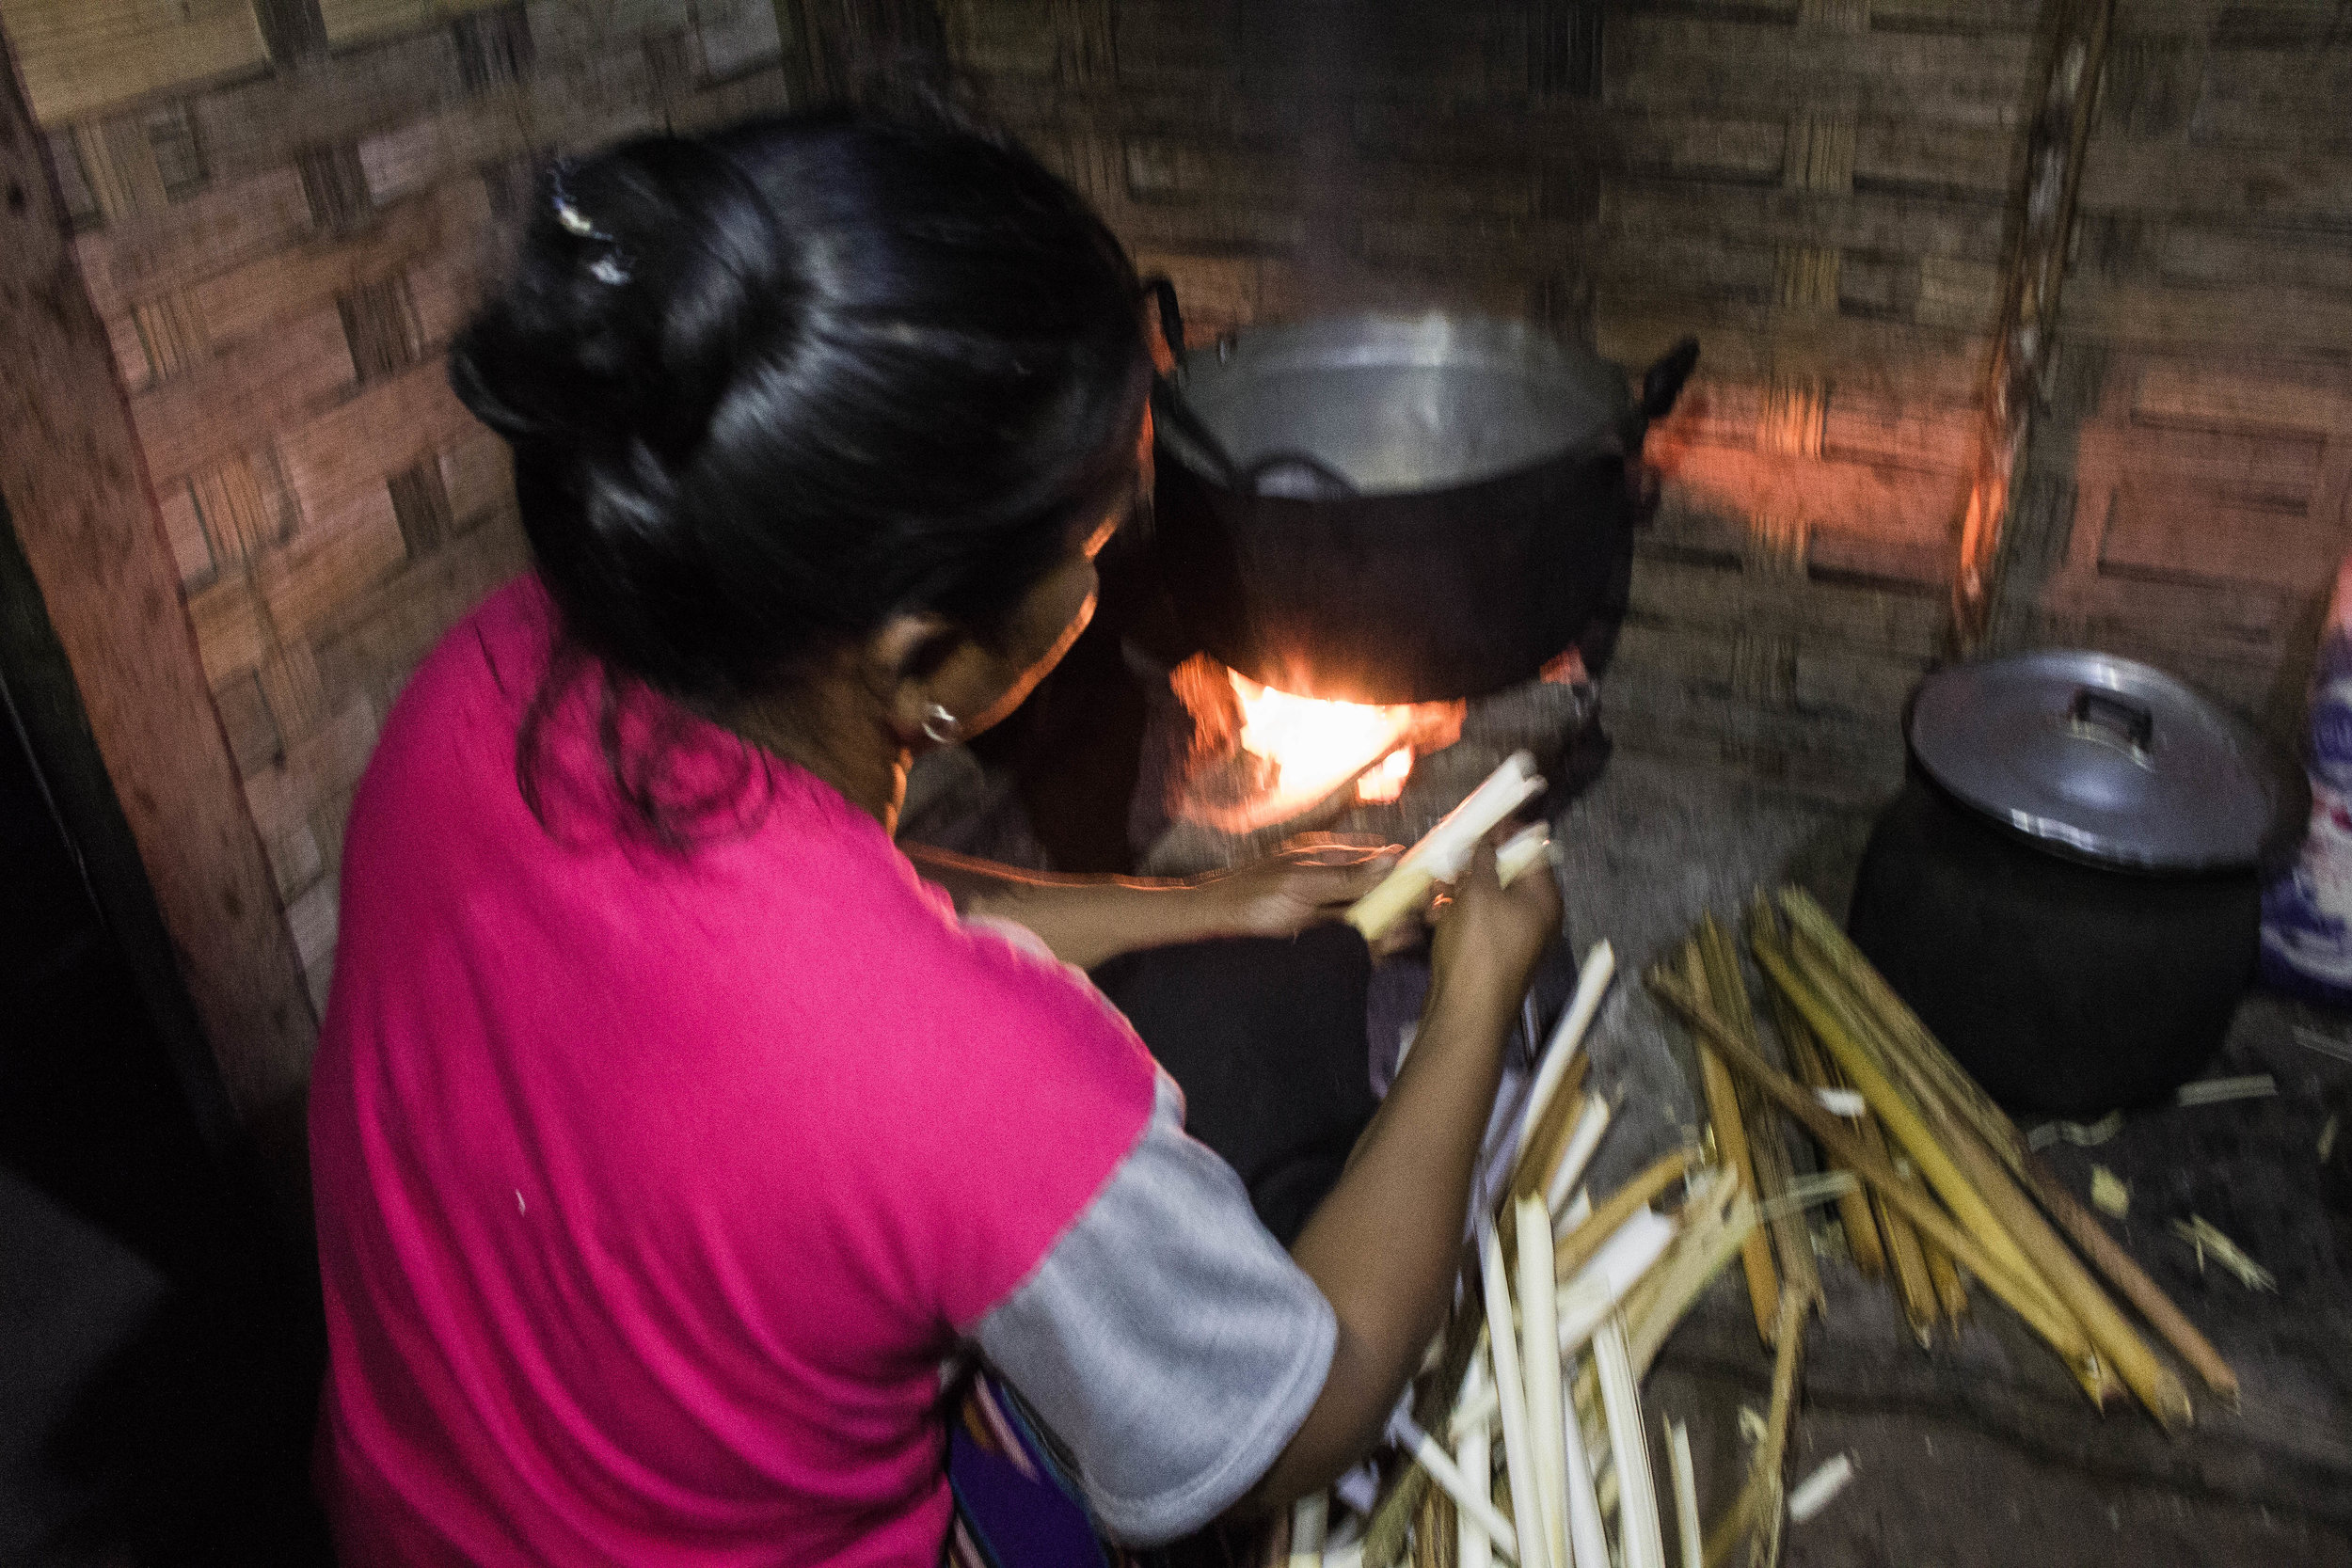 A WOMAN FROM NA LAN VILLAGE COOKS OUR DINNER OVER A FIRE WITH A SINGLE LIGHTBULB